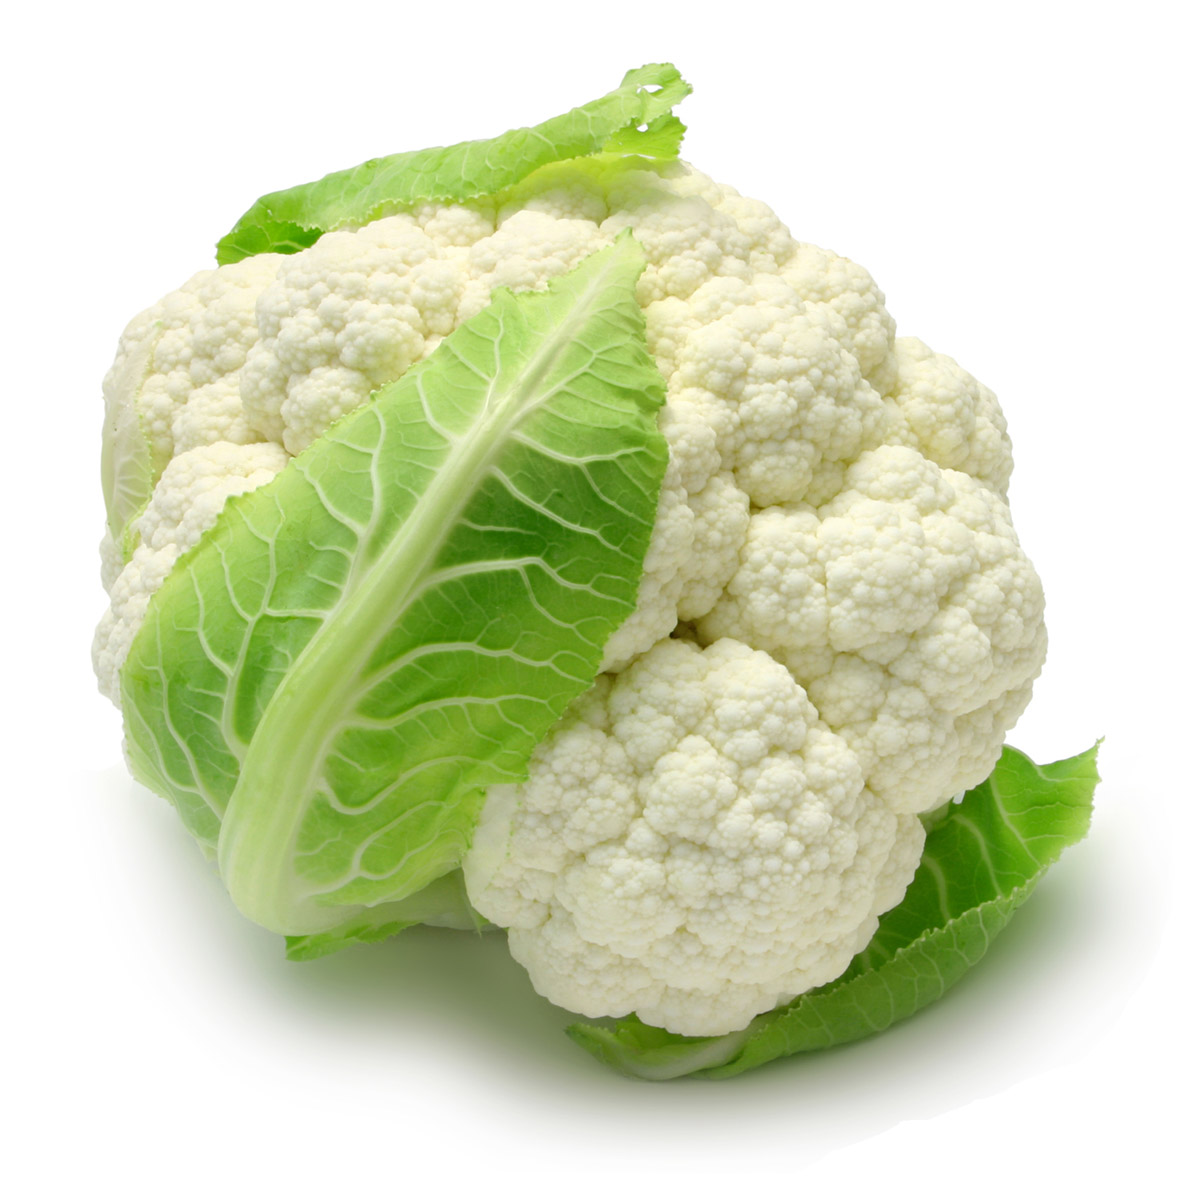 Cauliflower picture material 25011